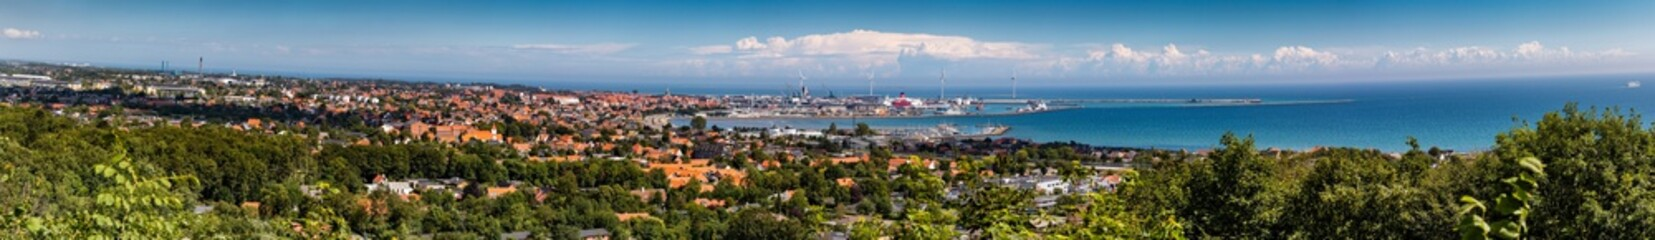 Panorama of Frederikshavn in Denmark 2017. Shot at Pikkerbakken hiking spot. Stitch of more than 5 shots.